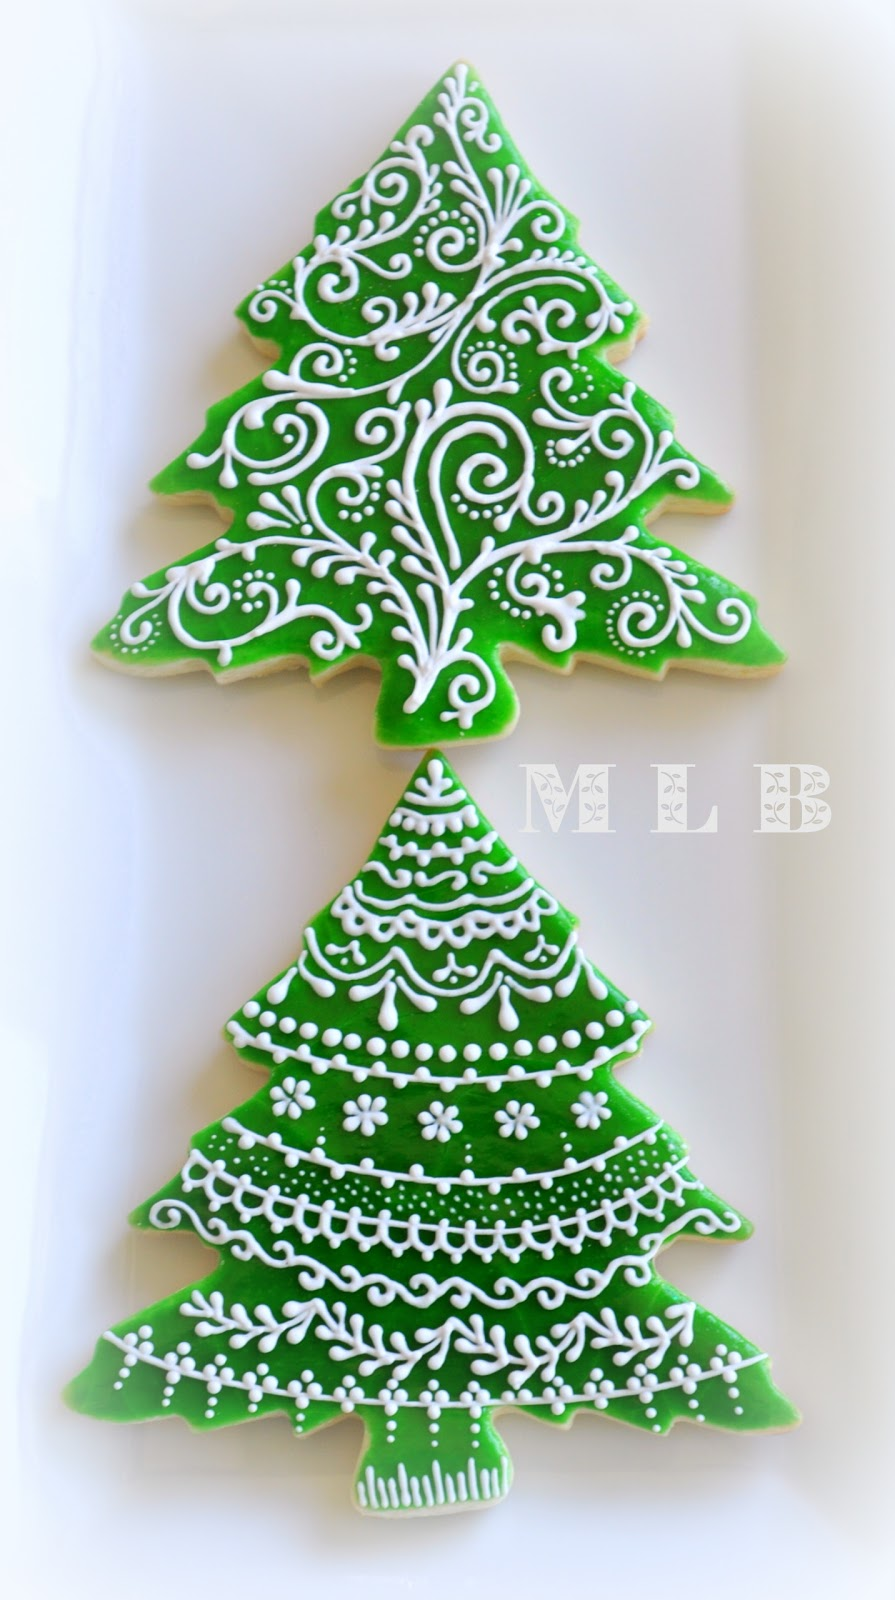 My Little Bakery Christmas Tree CookiesAnd Polish